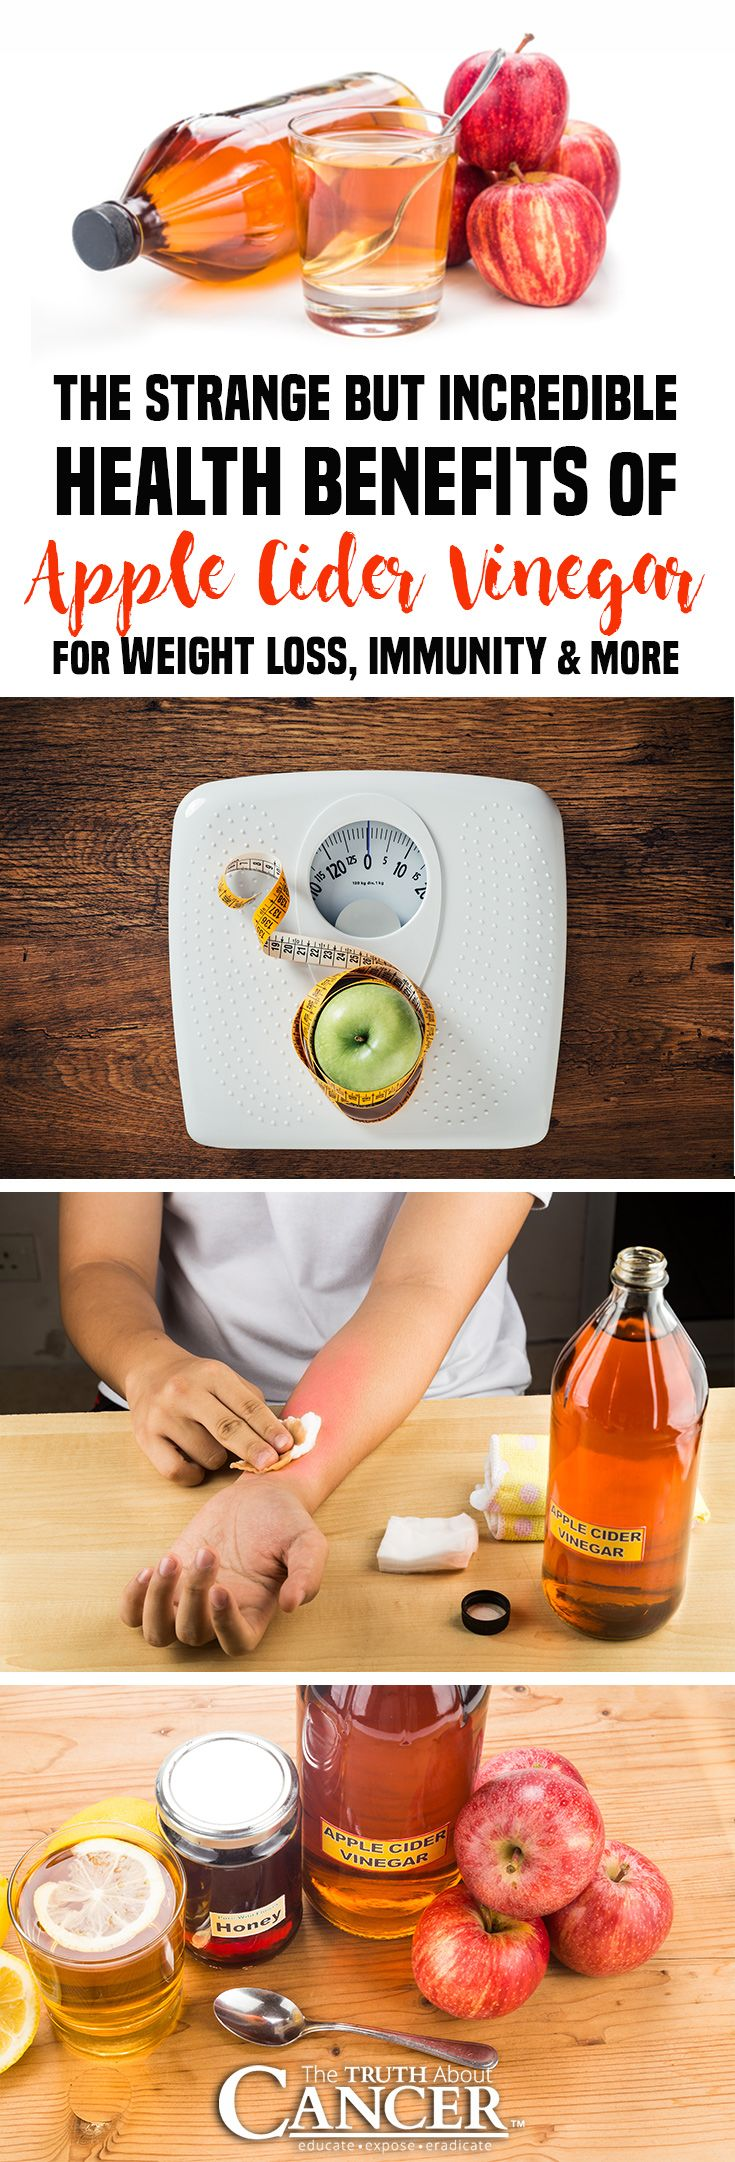 Discover the incredible health benefits of apple cider vinegar for weight loss, immunity, antioxidants, and More! Click through to check it out as Dr. David Jockers also discusses the 12 unique ways to use apple cider vinegar like disinfect wounds, treat acne, remove warts, energize and detoxify, etc. Please re-pin. Together we'll educate the world about healthy lifestyle!